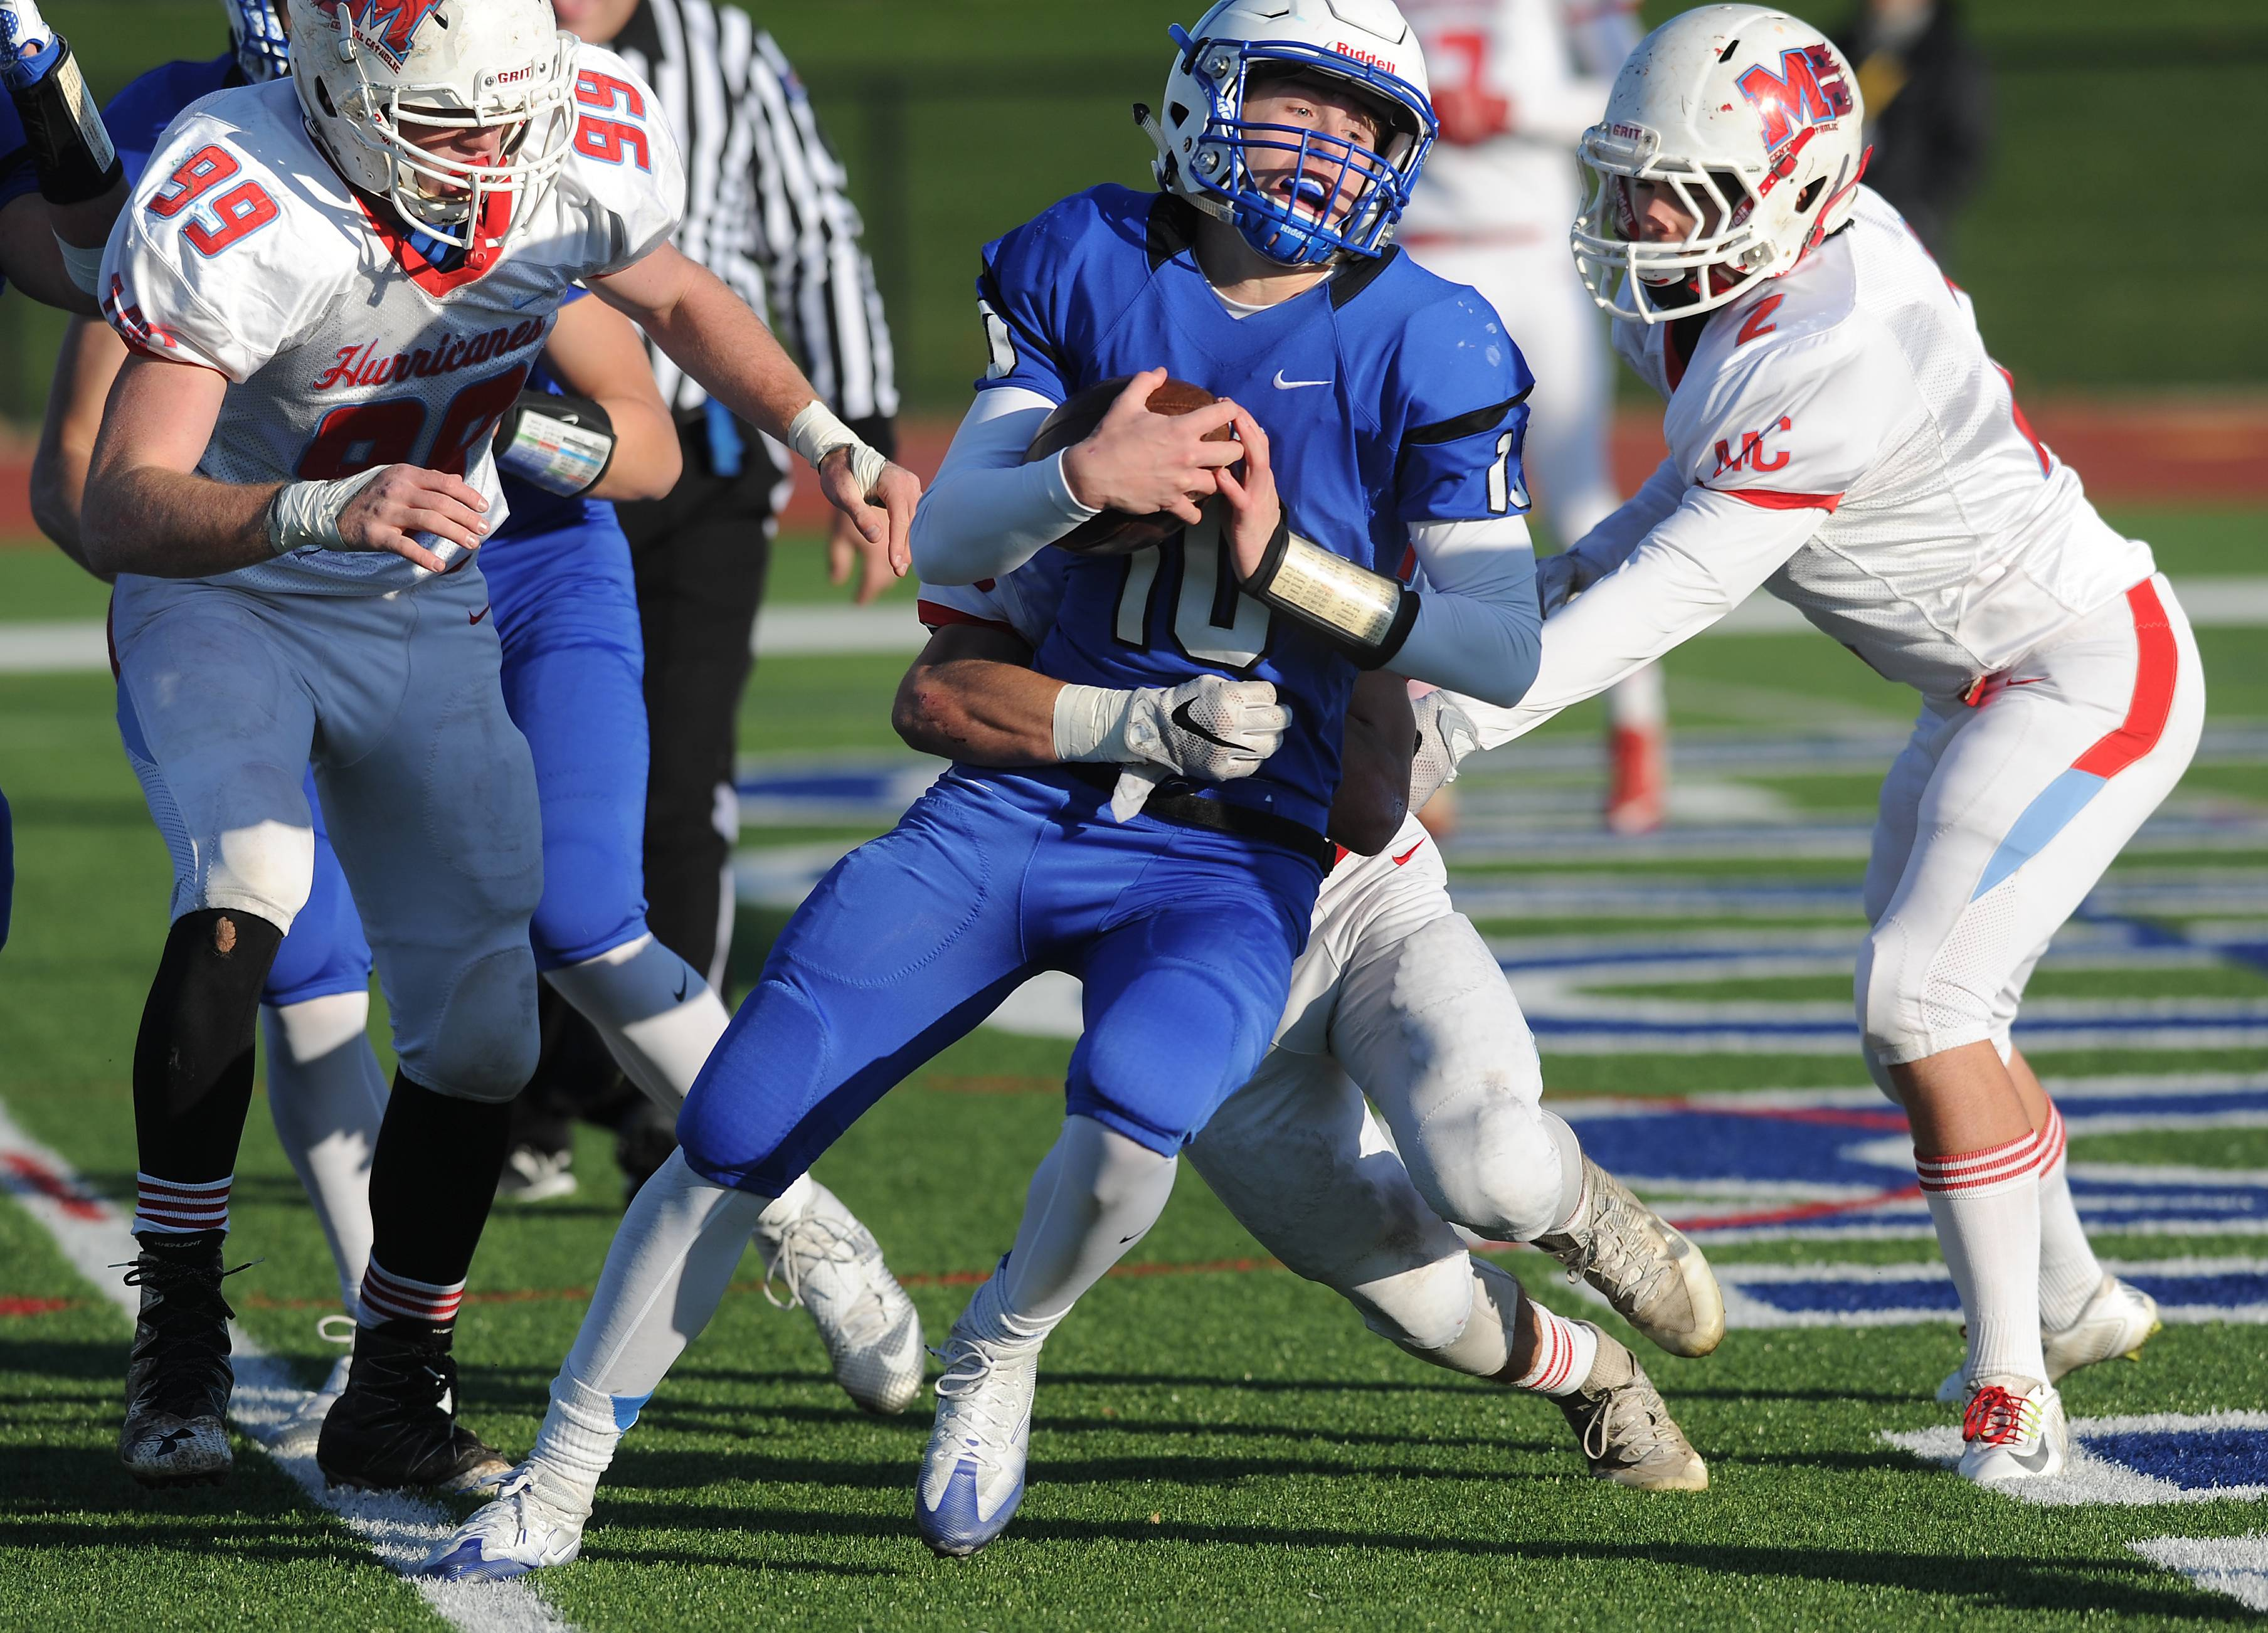 Vernon Hills' Kyle Hull scores in the fourth quarter despite pressure from Marian Central Catholic's defense in the Class 5A state quarterfinals at Vernon Hills on Saturday.